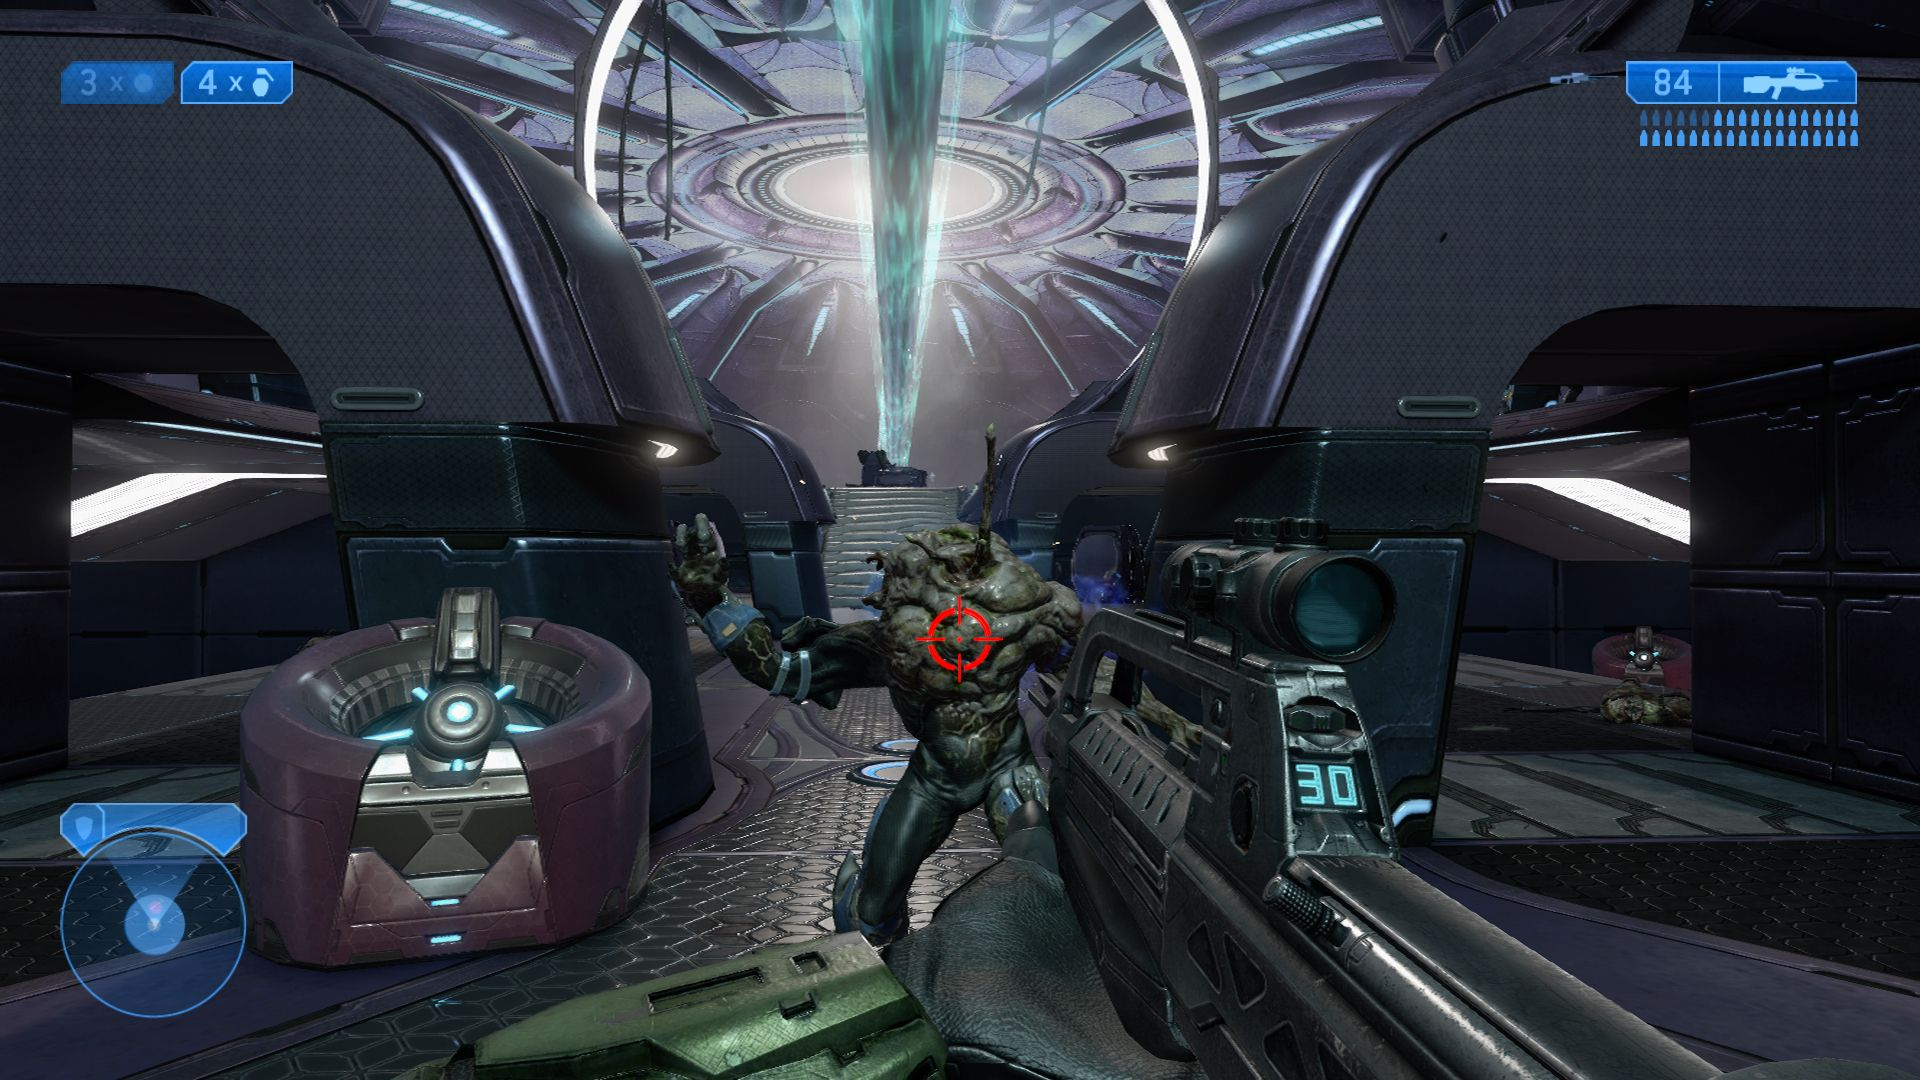 Halo 2 arcade hacked games red ball game 2